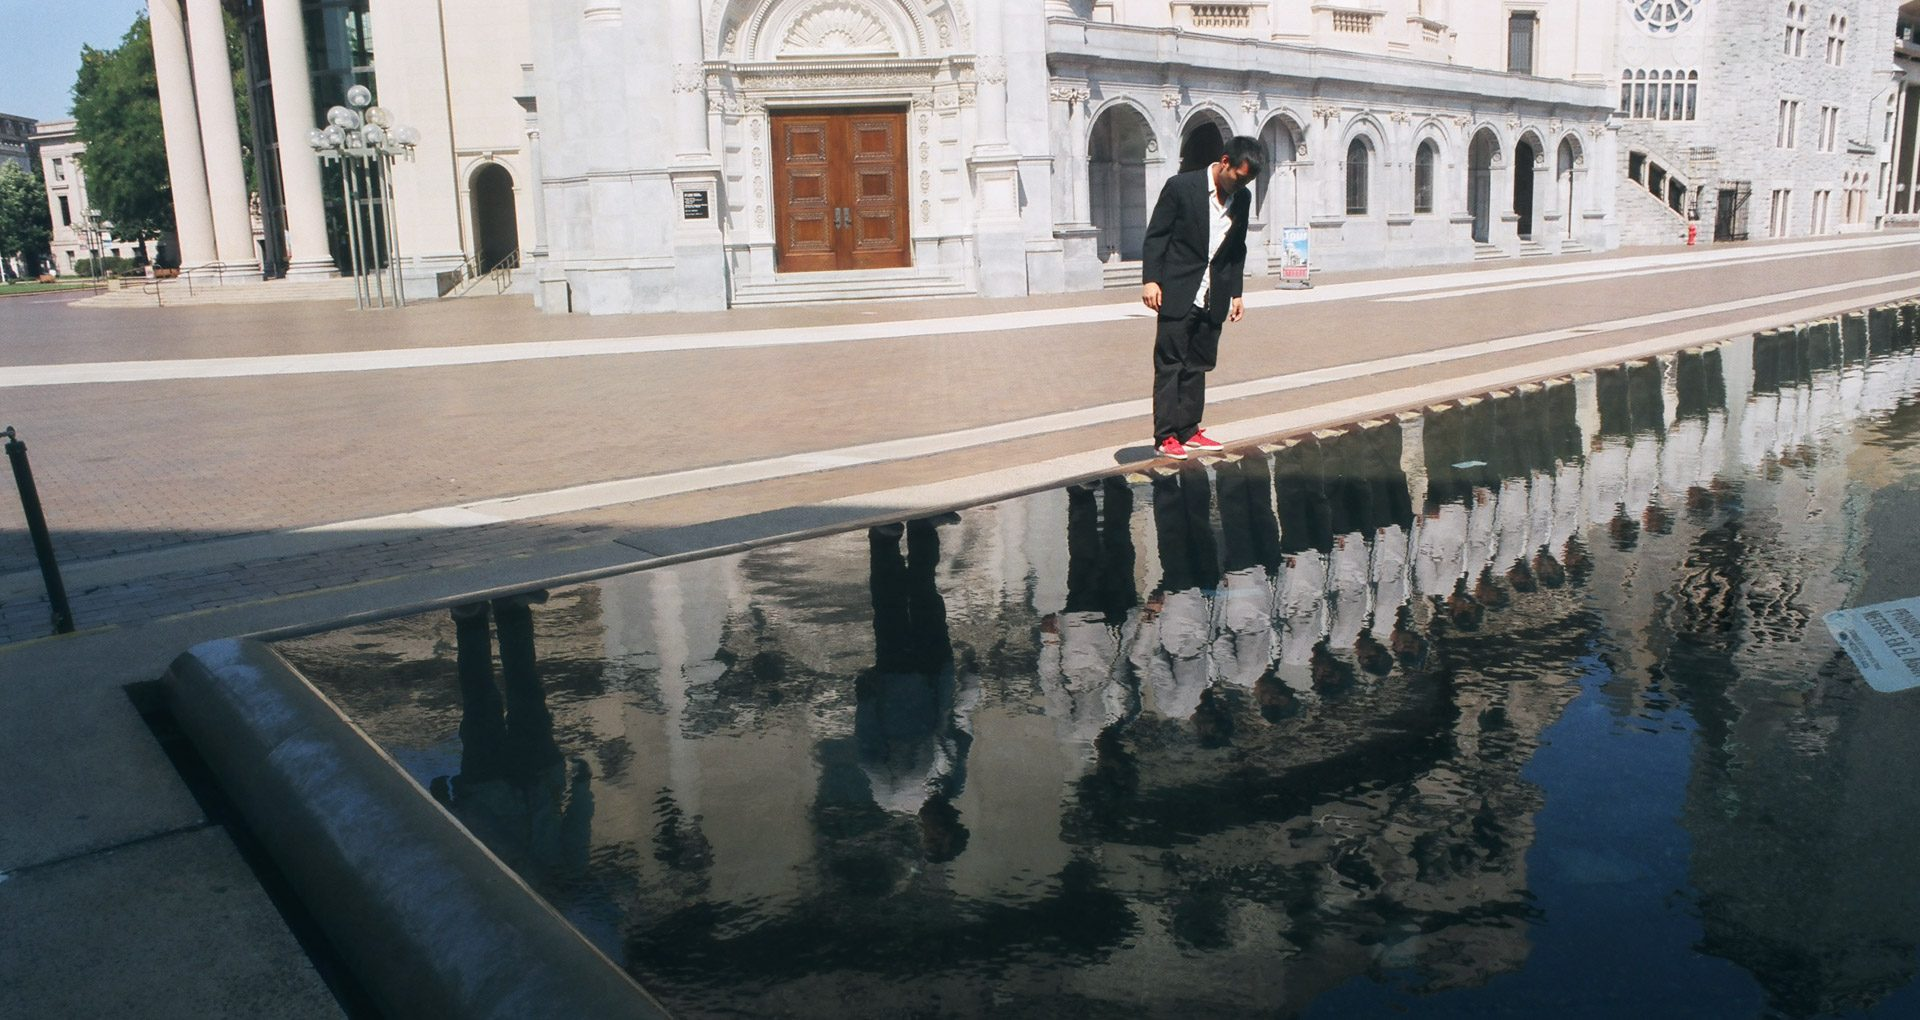 A man in a dark suit standing in front of a reflecting pool, a line of same man in white suits reflected back.